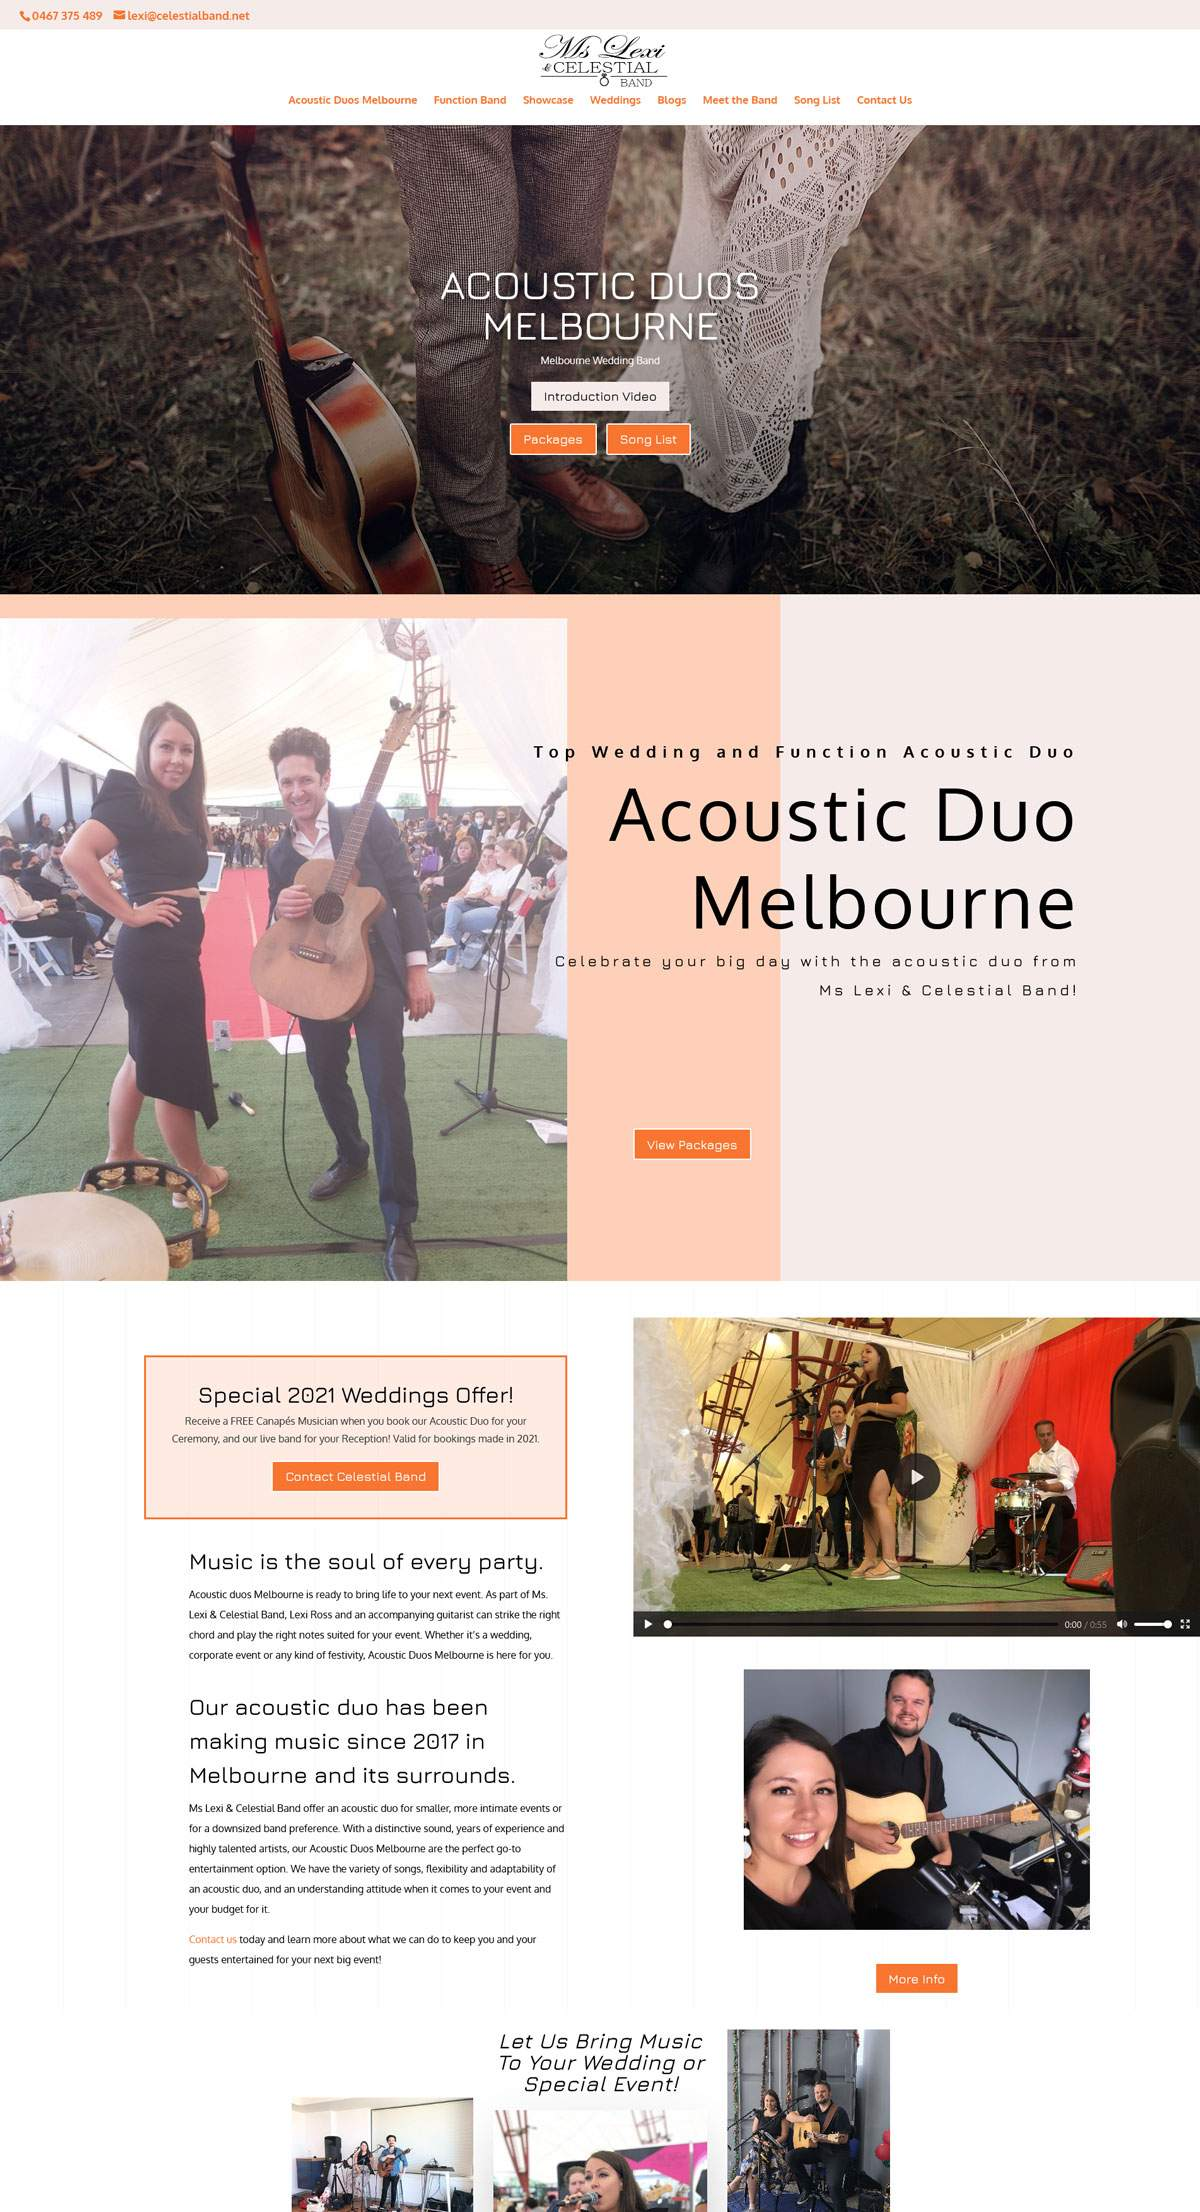 Brochure Websites - Ms Lexi and Celestial Band